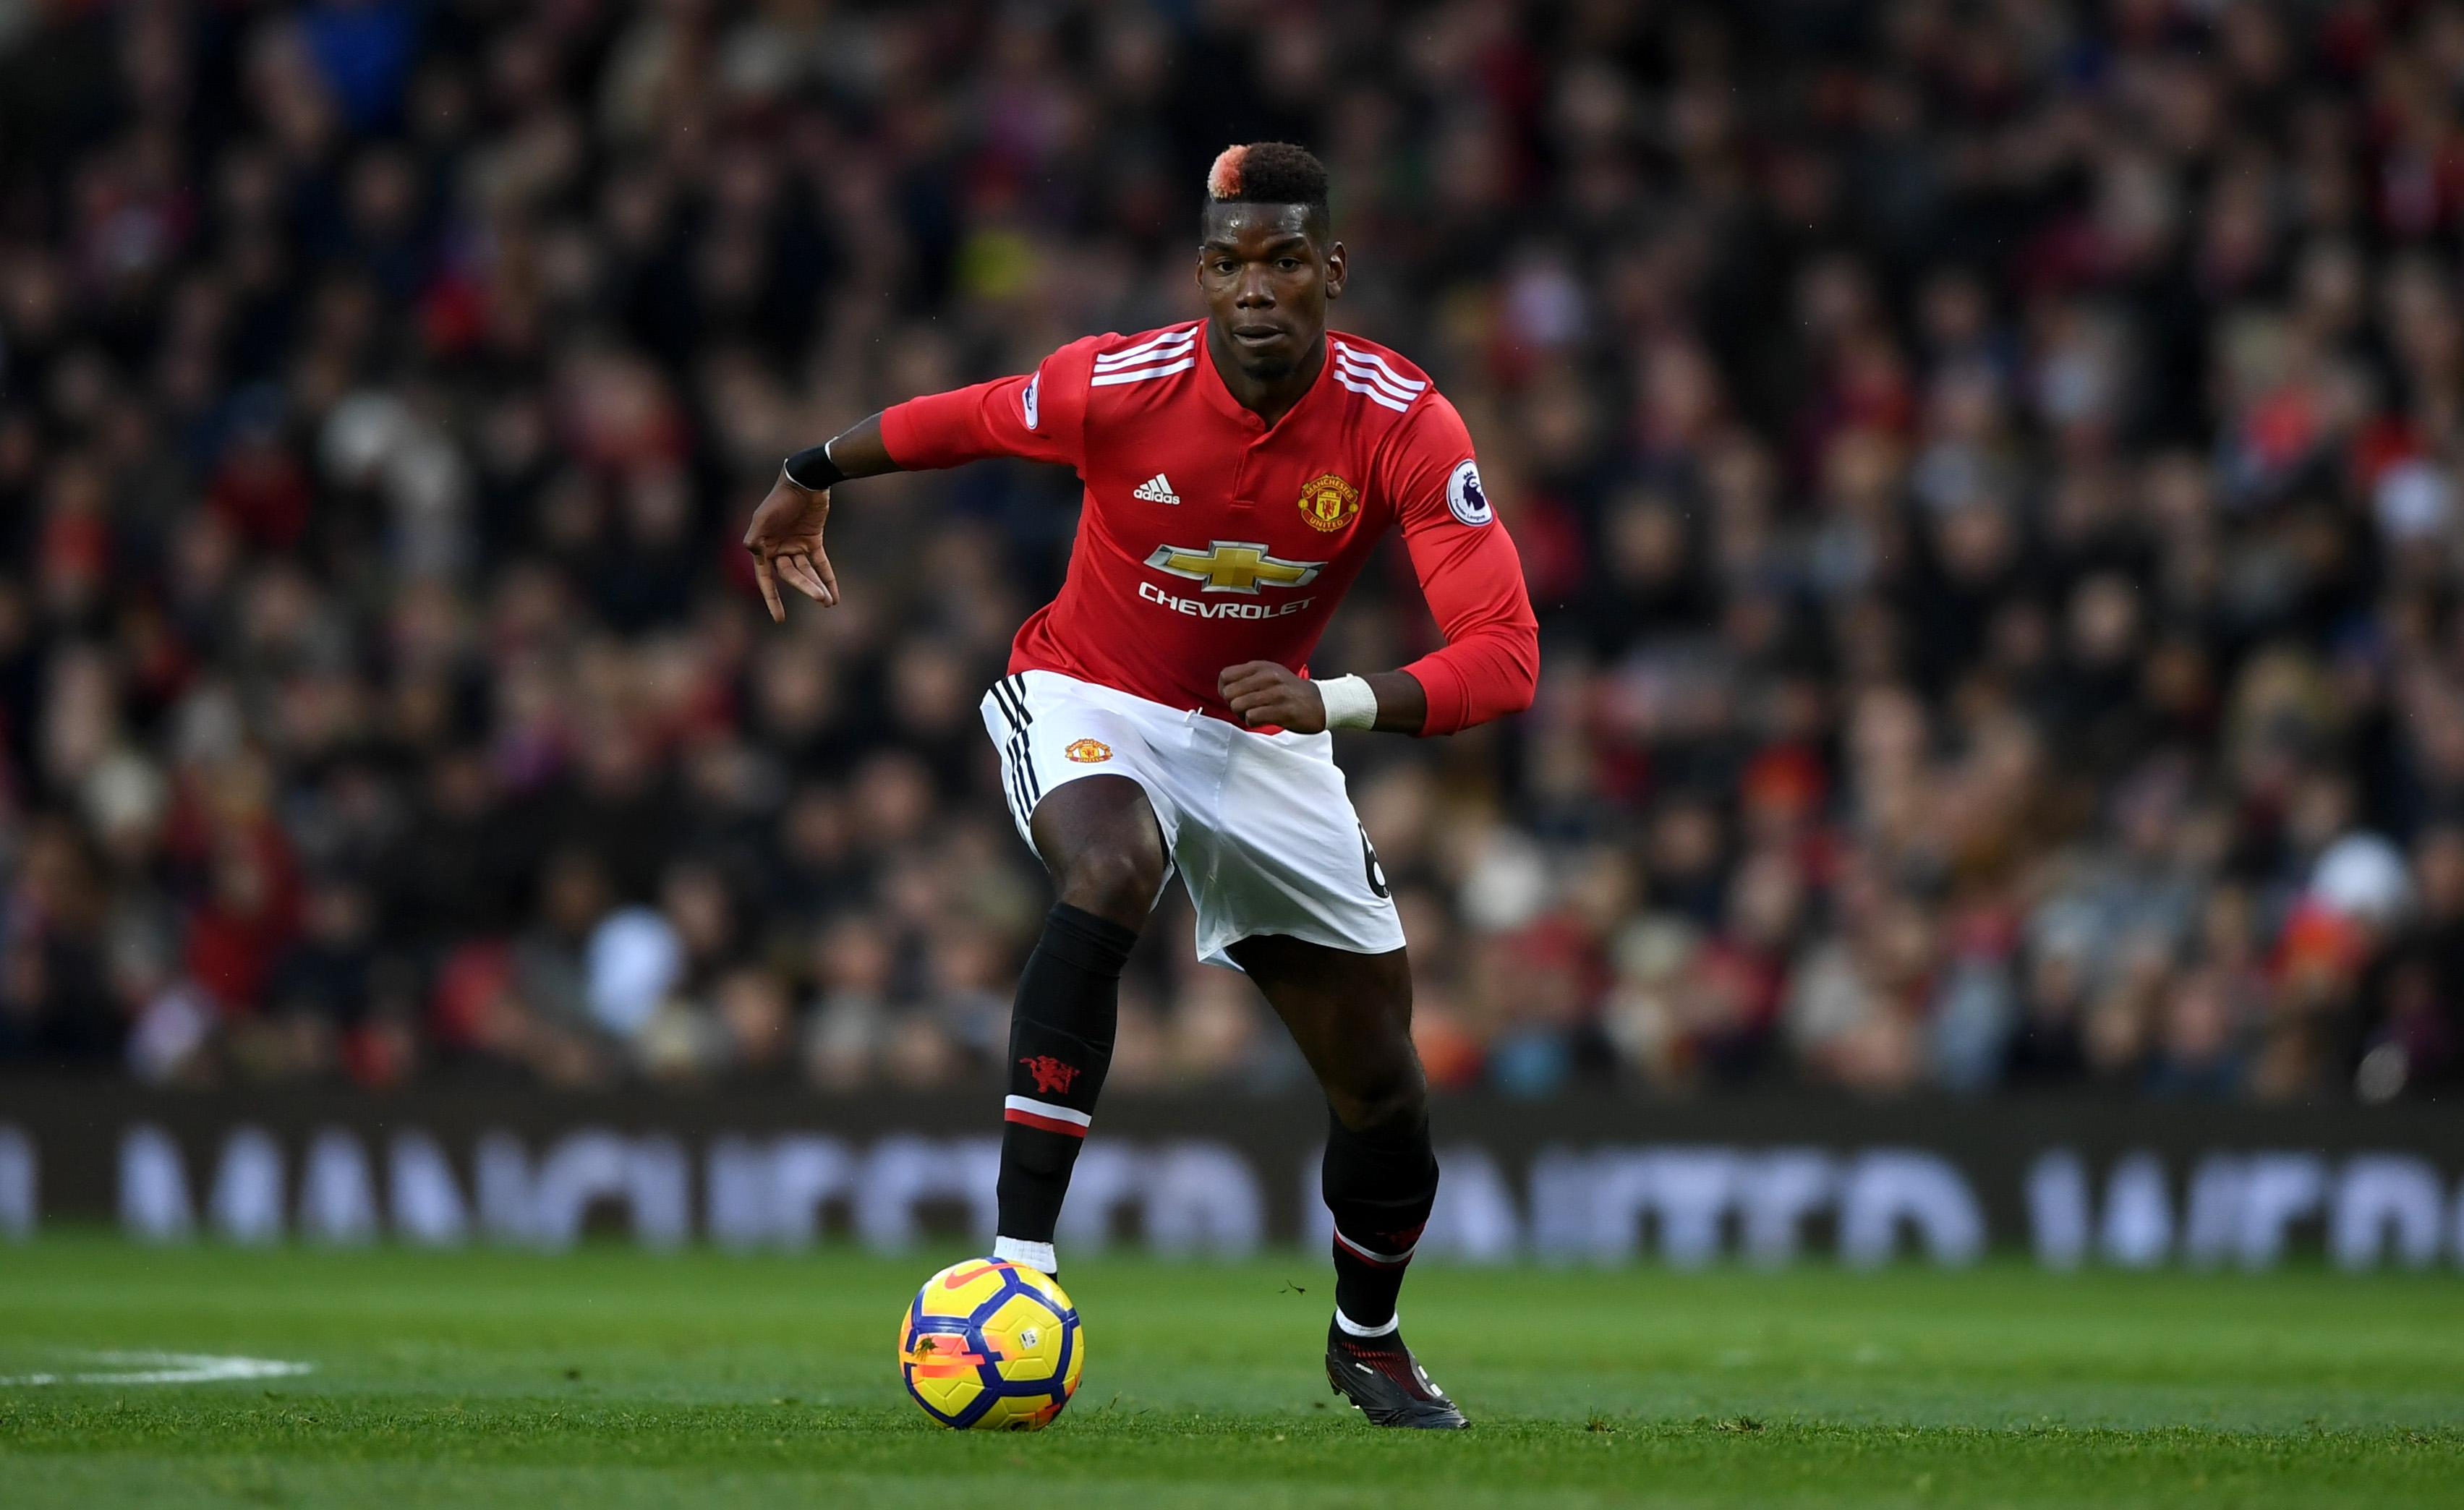 Paul Pogba: GW19 Ones To Watch: Paul Pogba